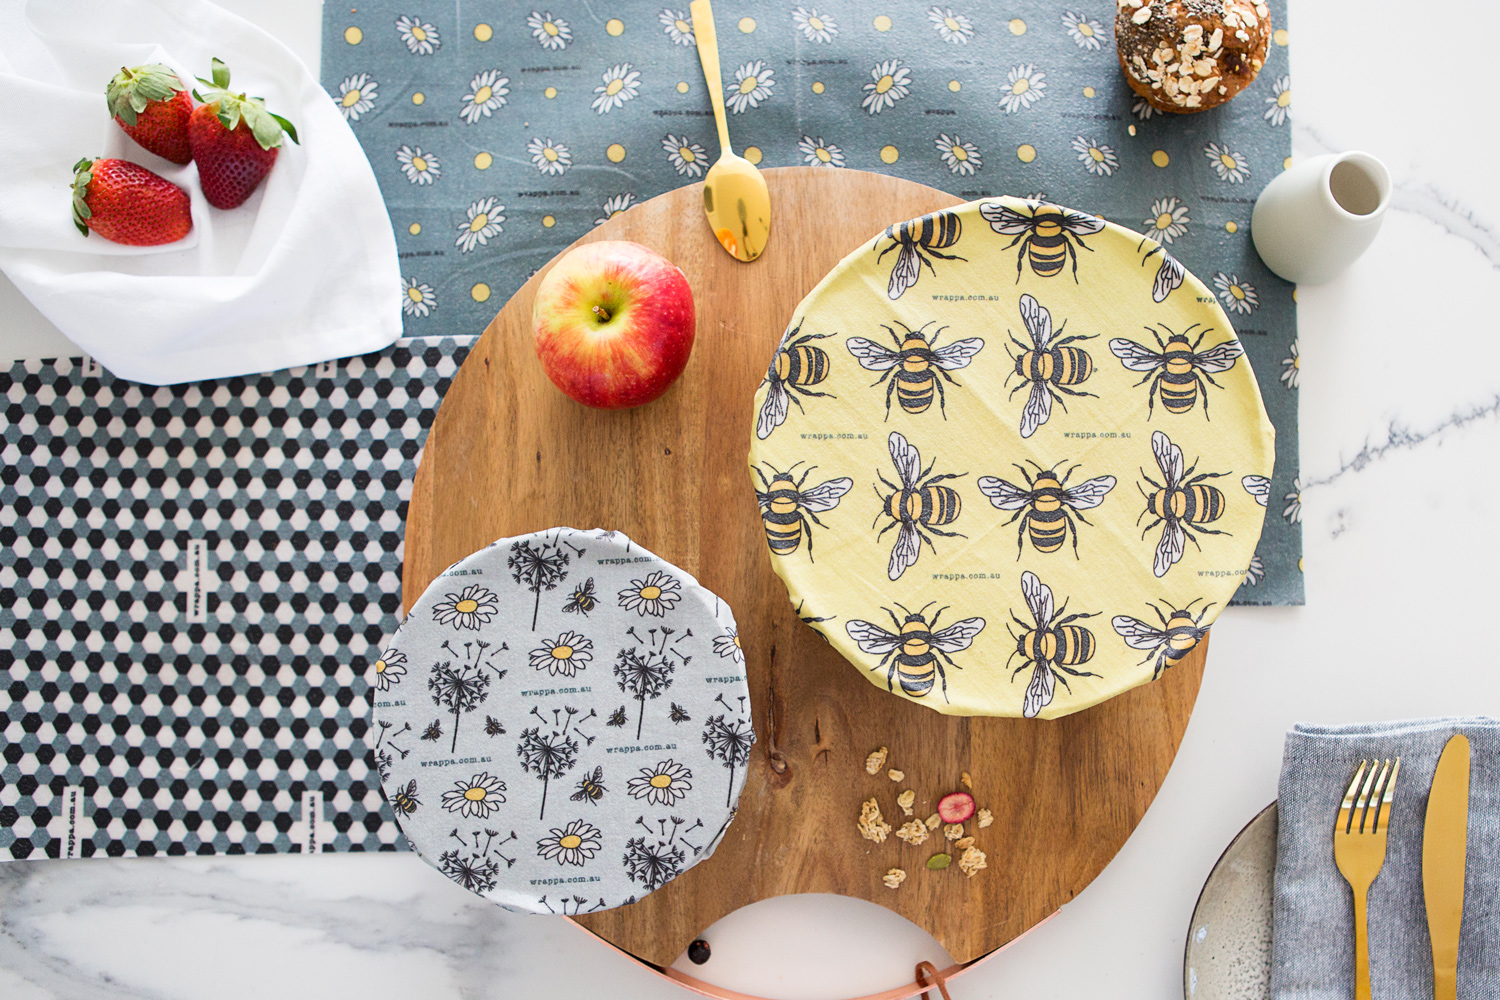 Wrappa Reusable Beeswax wrap and vegan wrap Jumbo Busy Bees covering 2 bowls